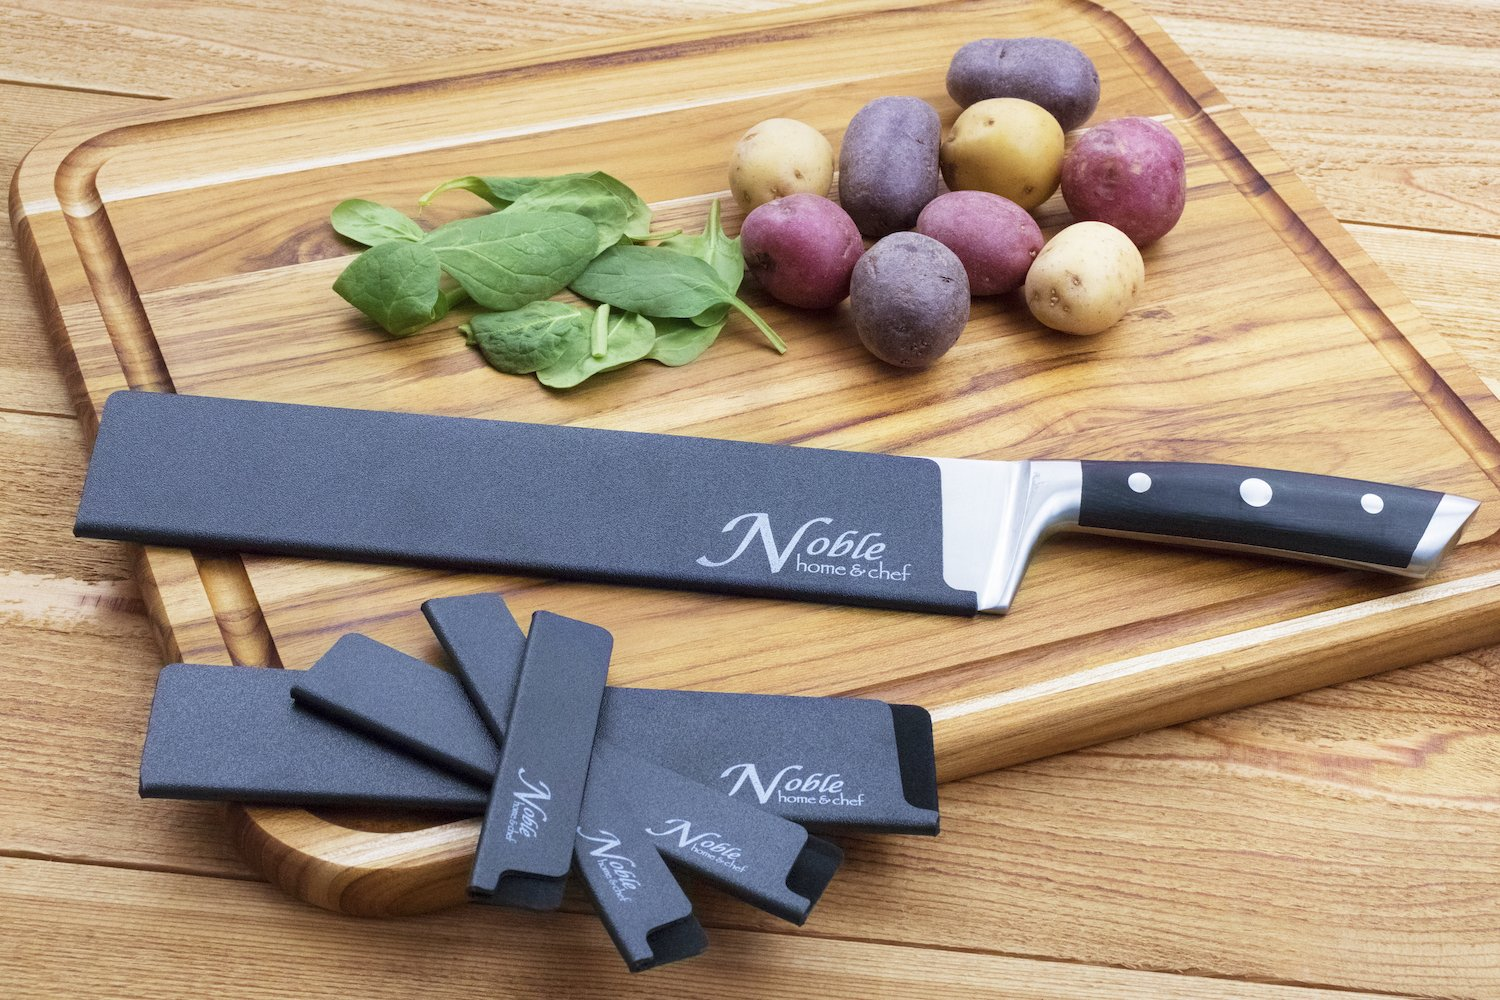 5-Piece Universal Knife Edge Guards are More Durable, BPA-Free, Gentle on Your Blades, and Long-Lasting. Noble Home & Chef Knife Covers Are Non-Toxic and Abrasion Resistant! (Knives Not Included) by Noble Home & Chef (Image #2)